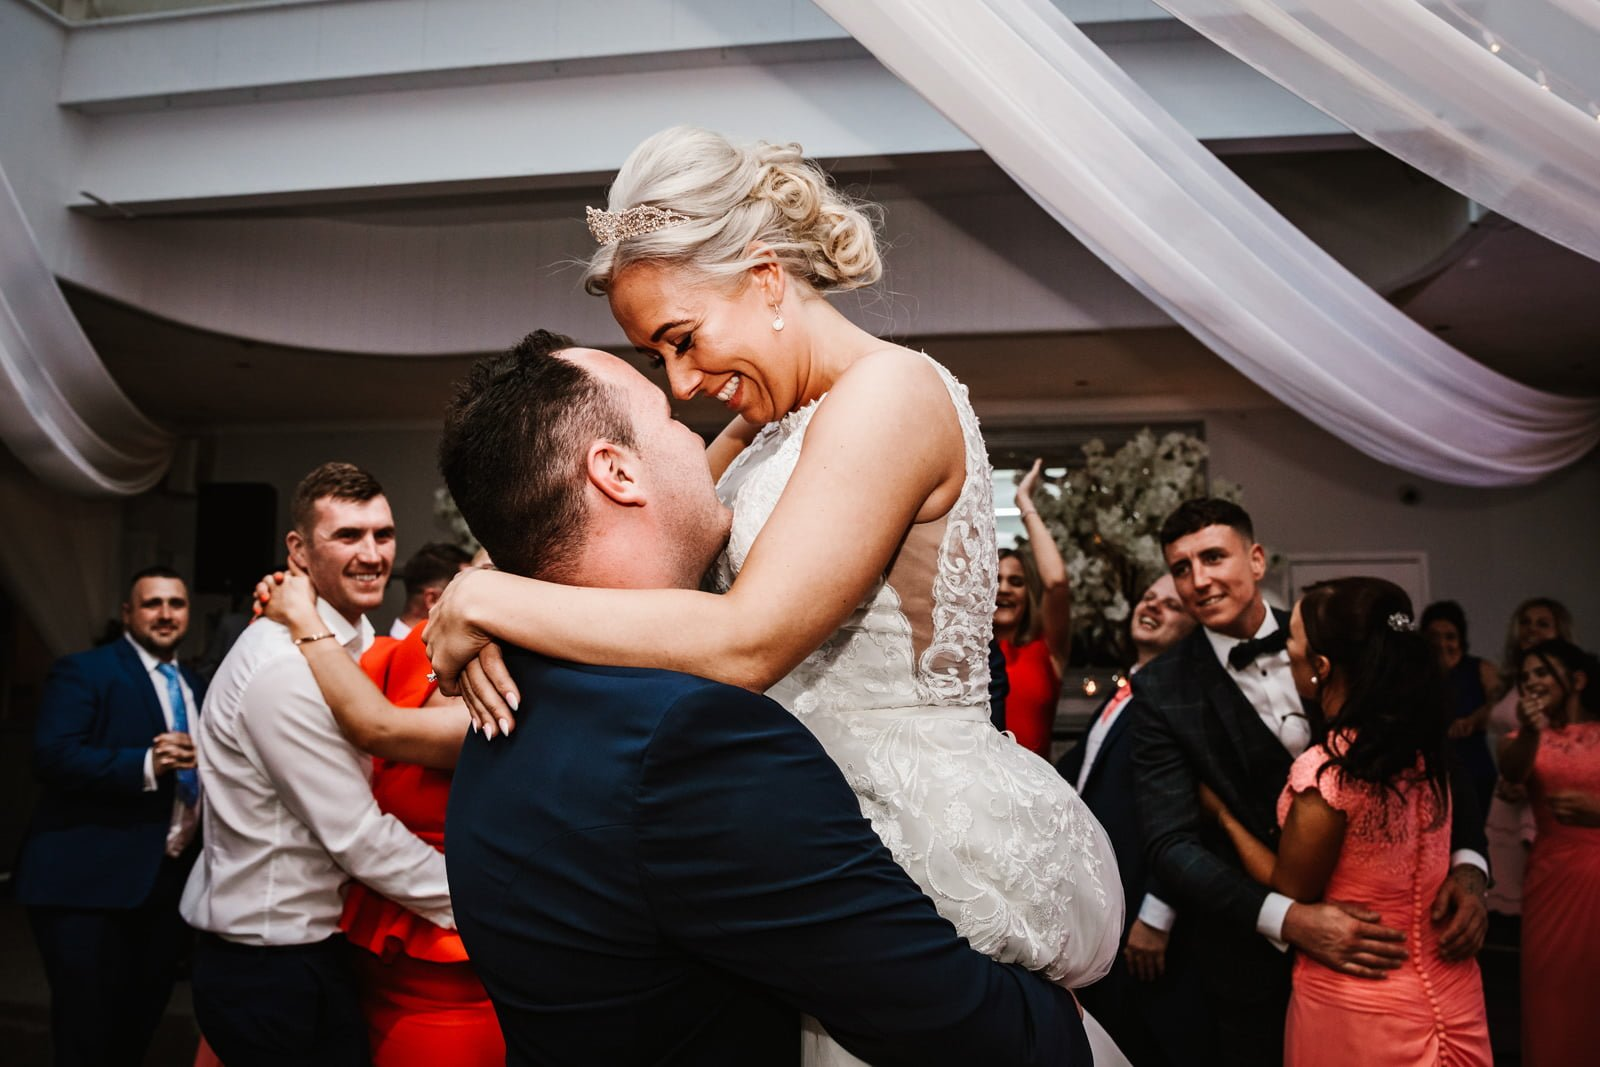 Groom picks up his bride during first dance